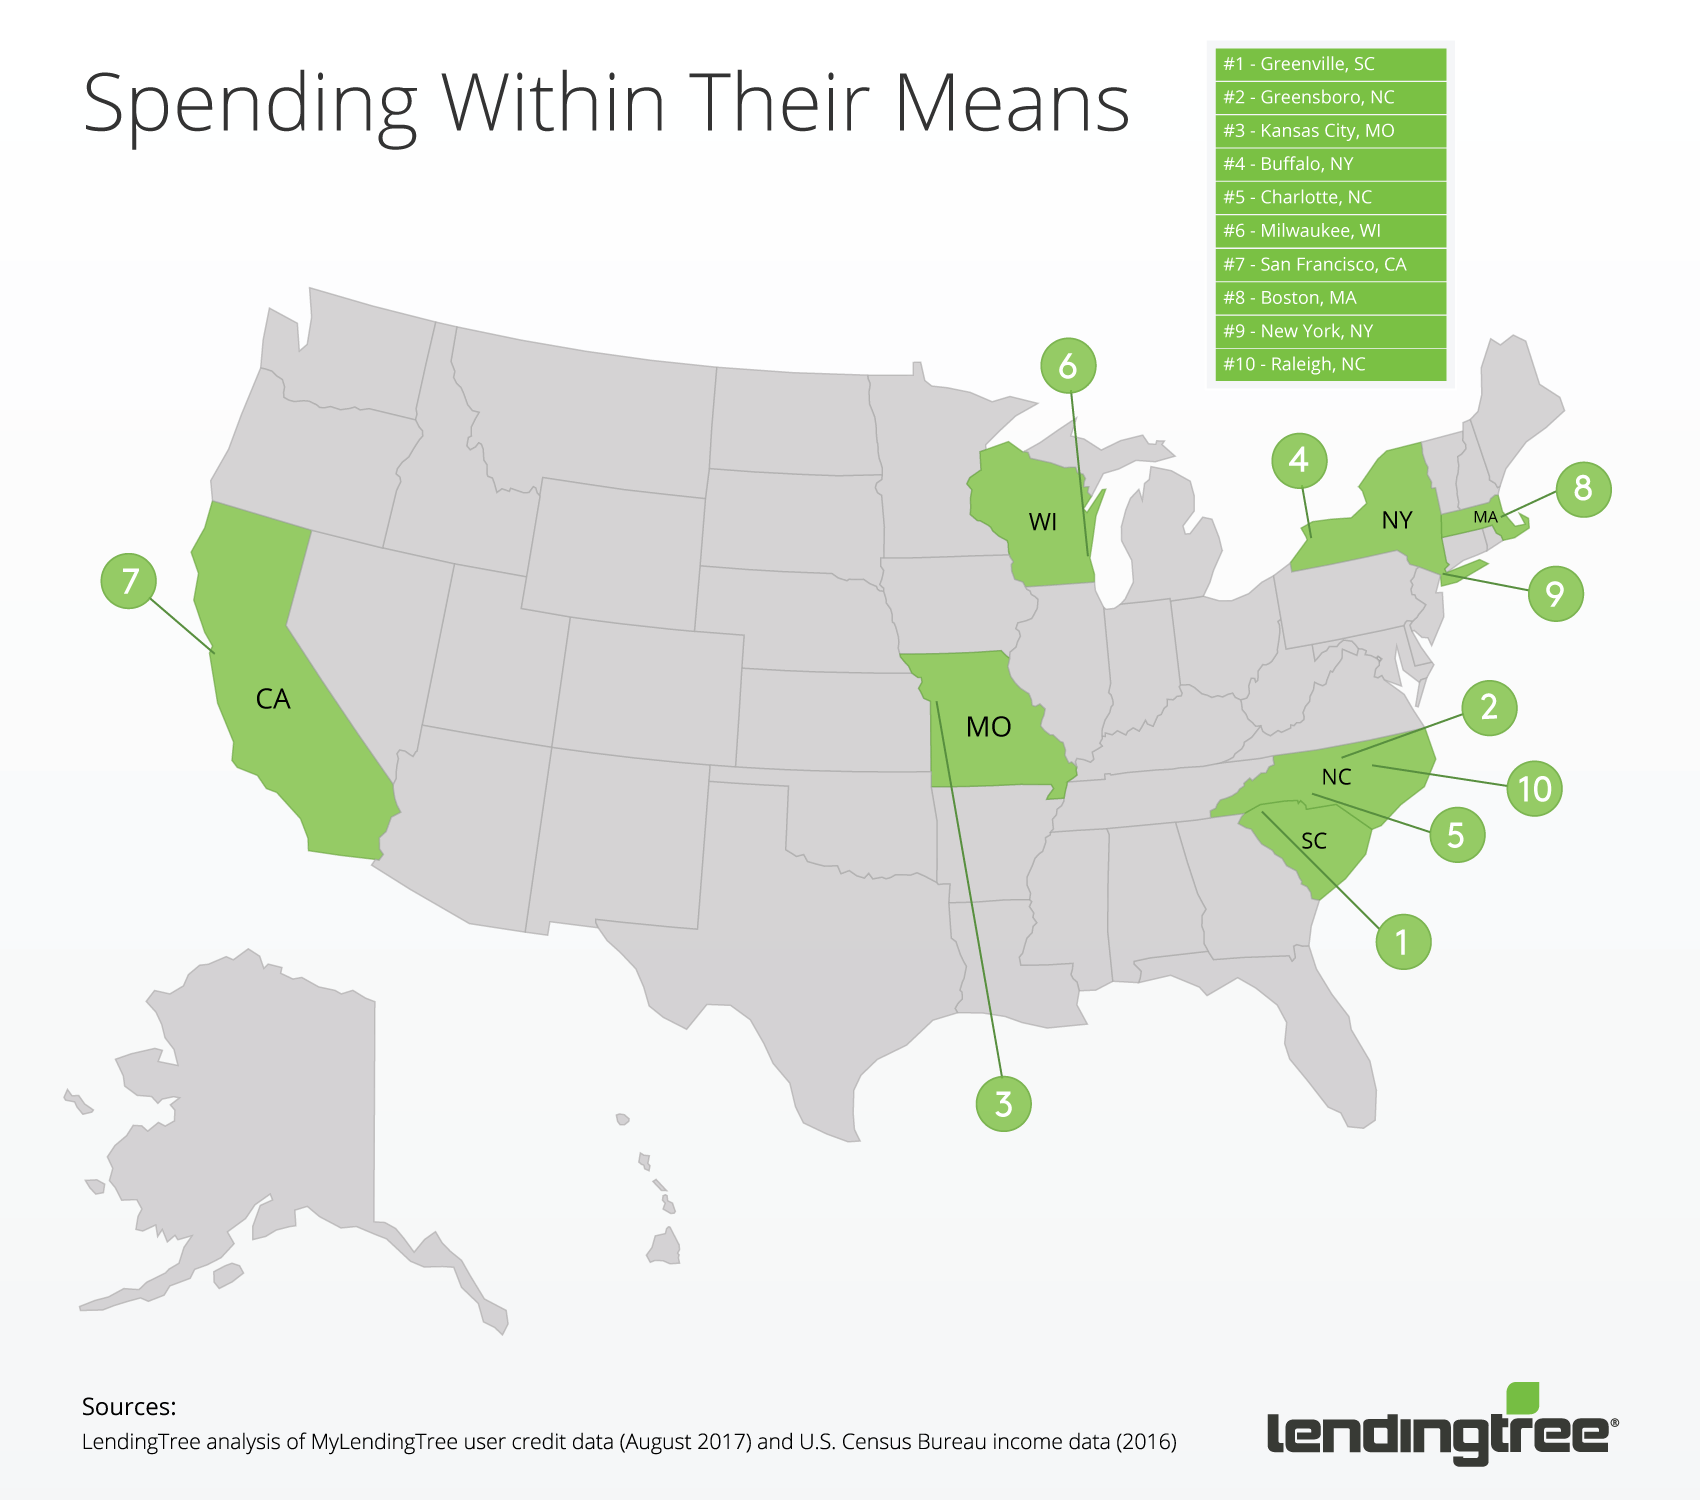 Where residents are most likely to spend within their means